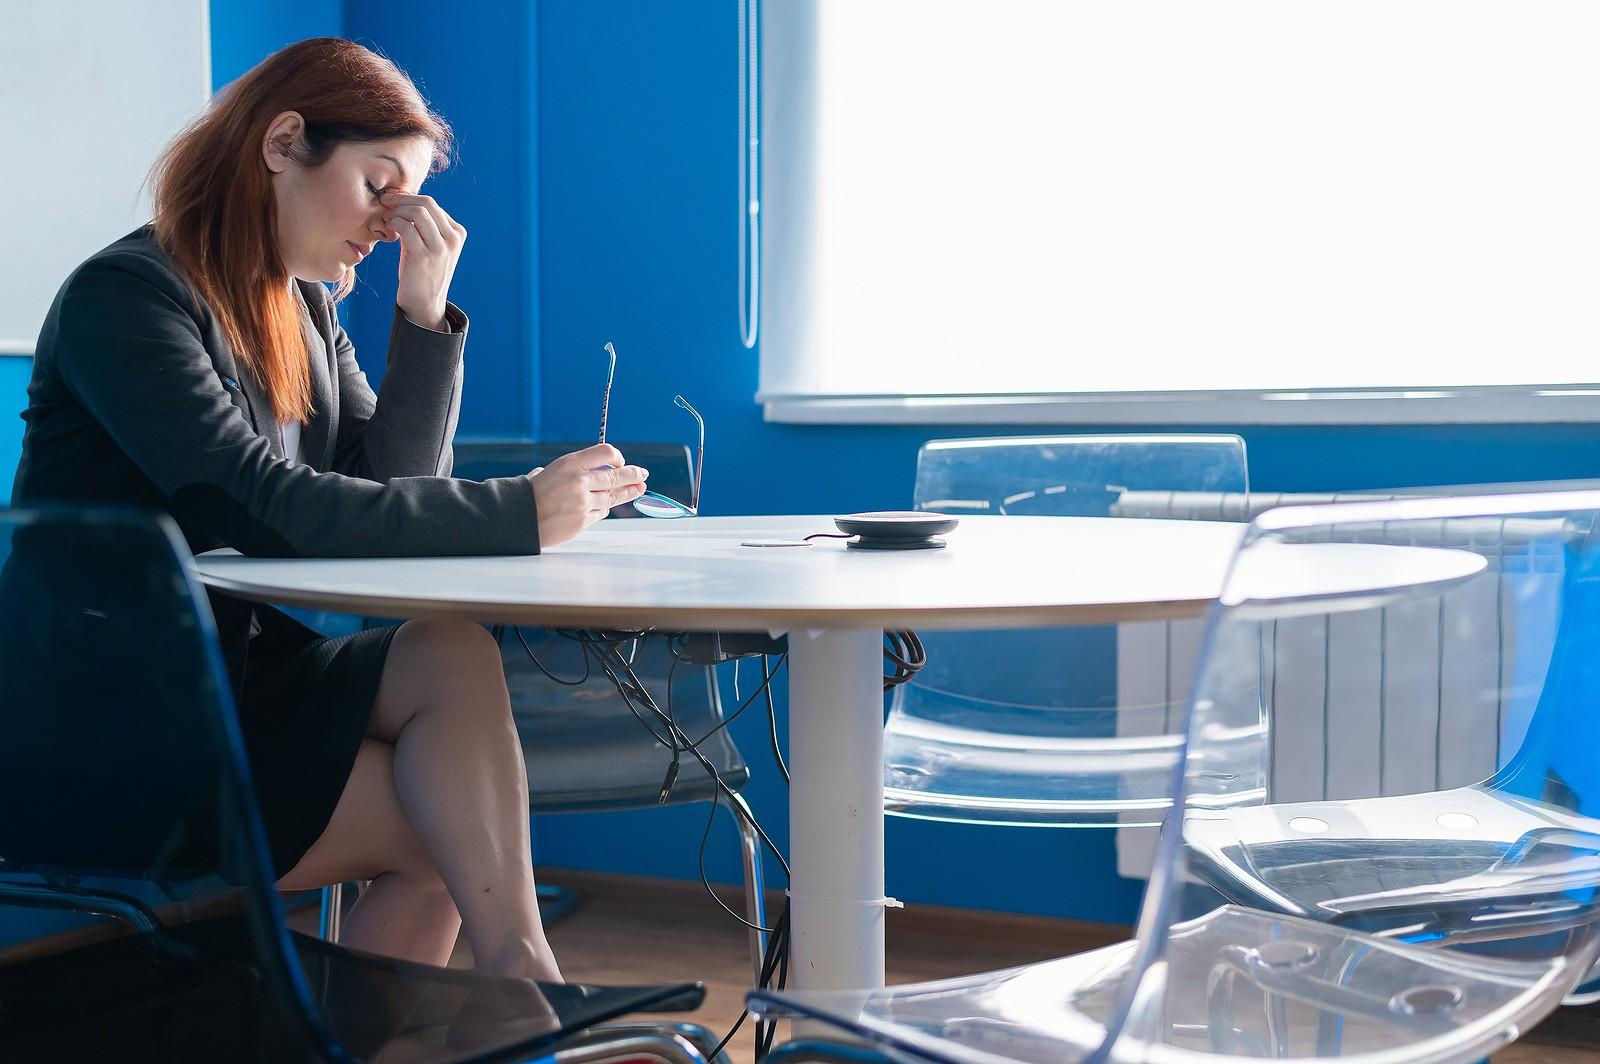 Exhausted, troubled Caucasian woman sitting in empty workshop space